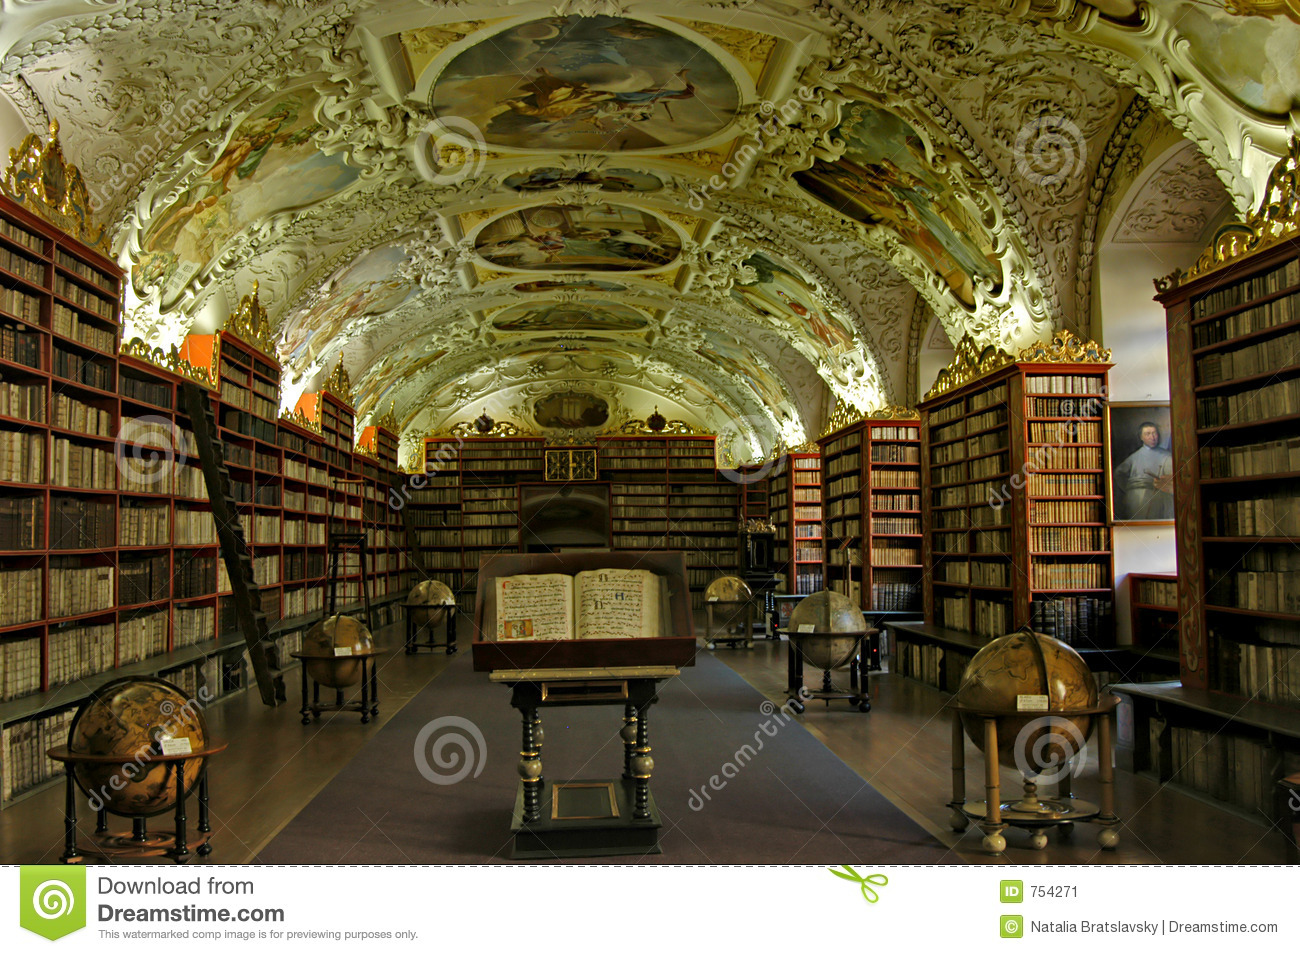 Old university library in Prague, Czech Republic.